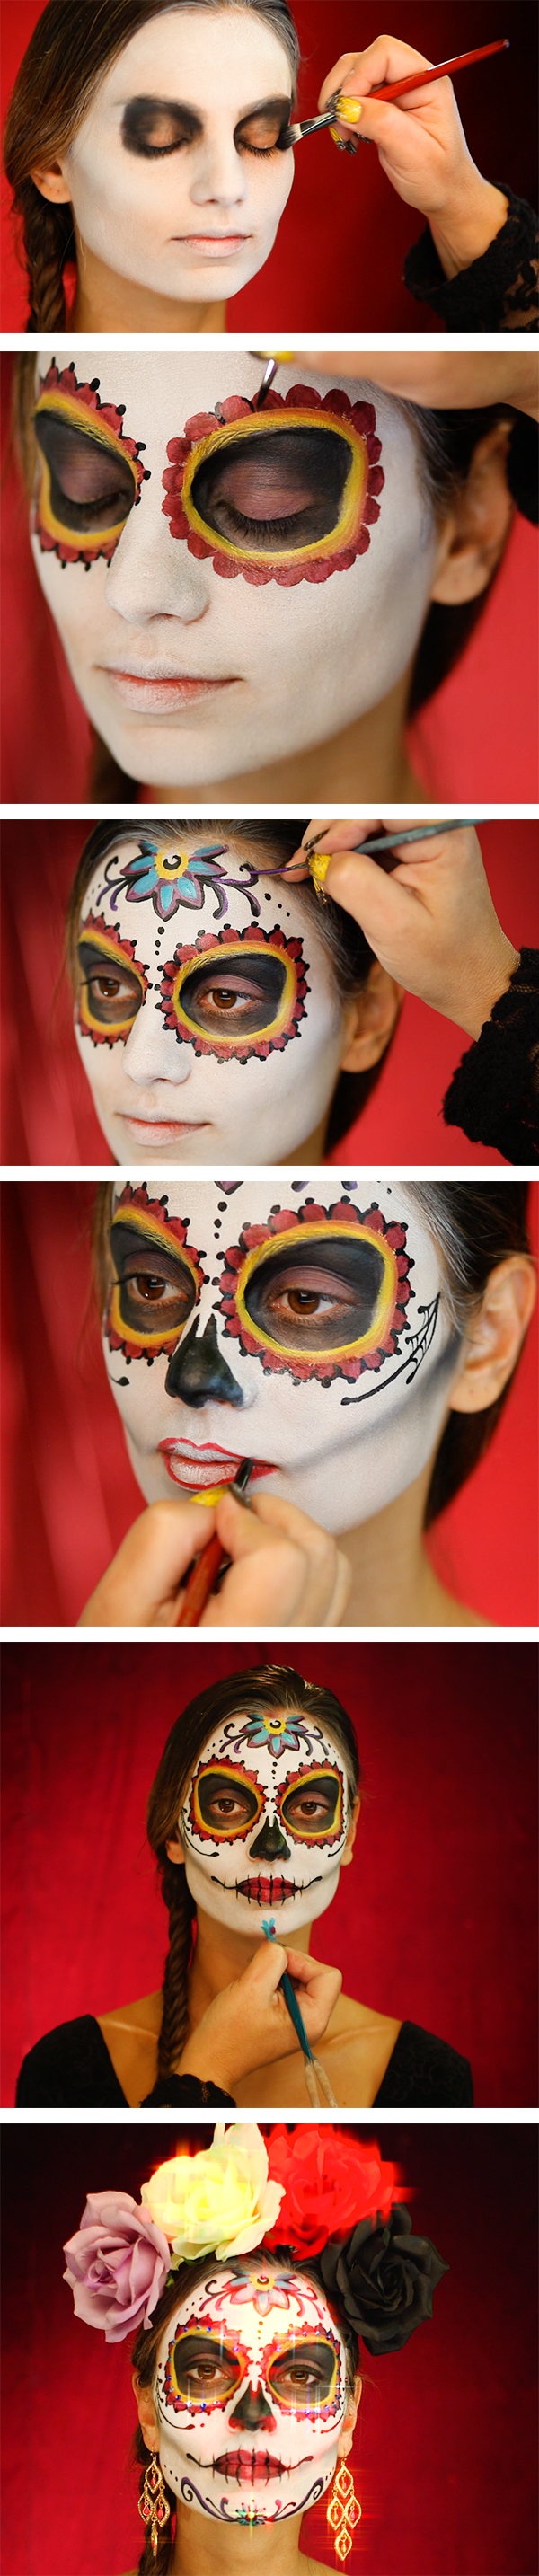 How Do We Celebrate The Day Of The Dead With A Lot Of Spirit And A - Day-of-the-dead-makeup-tutorial-video